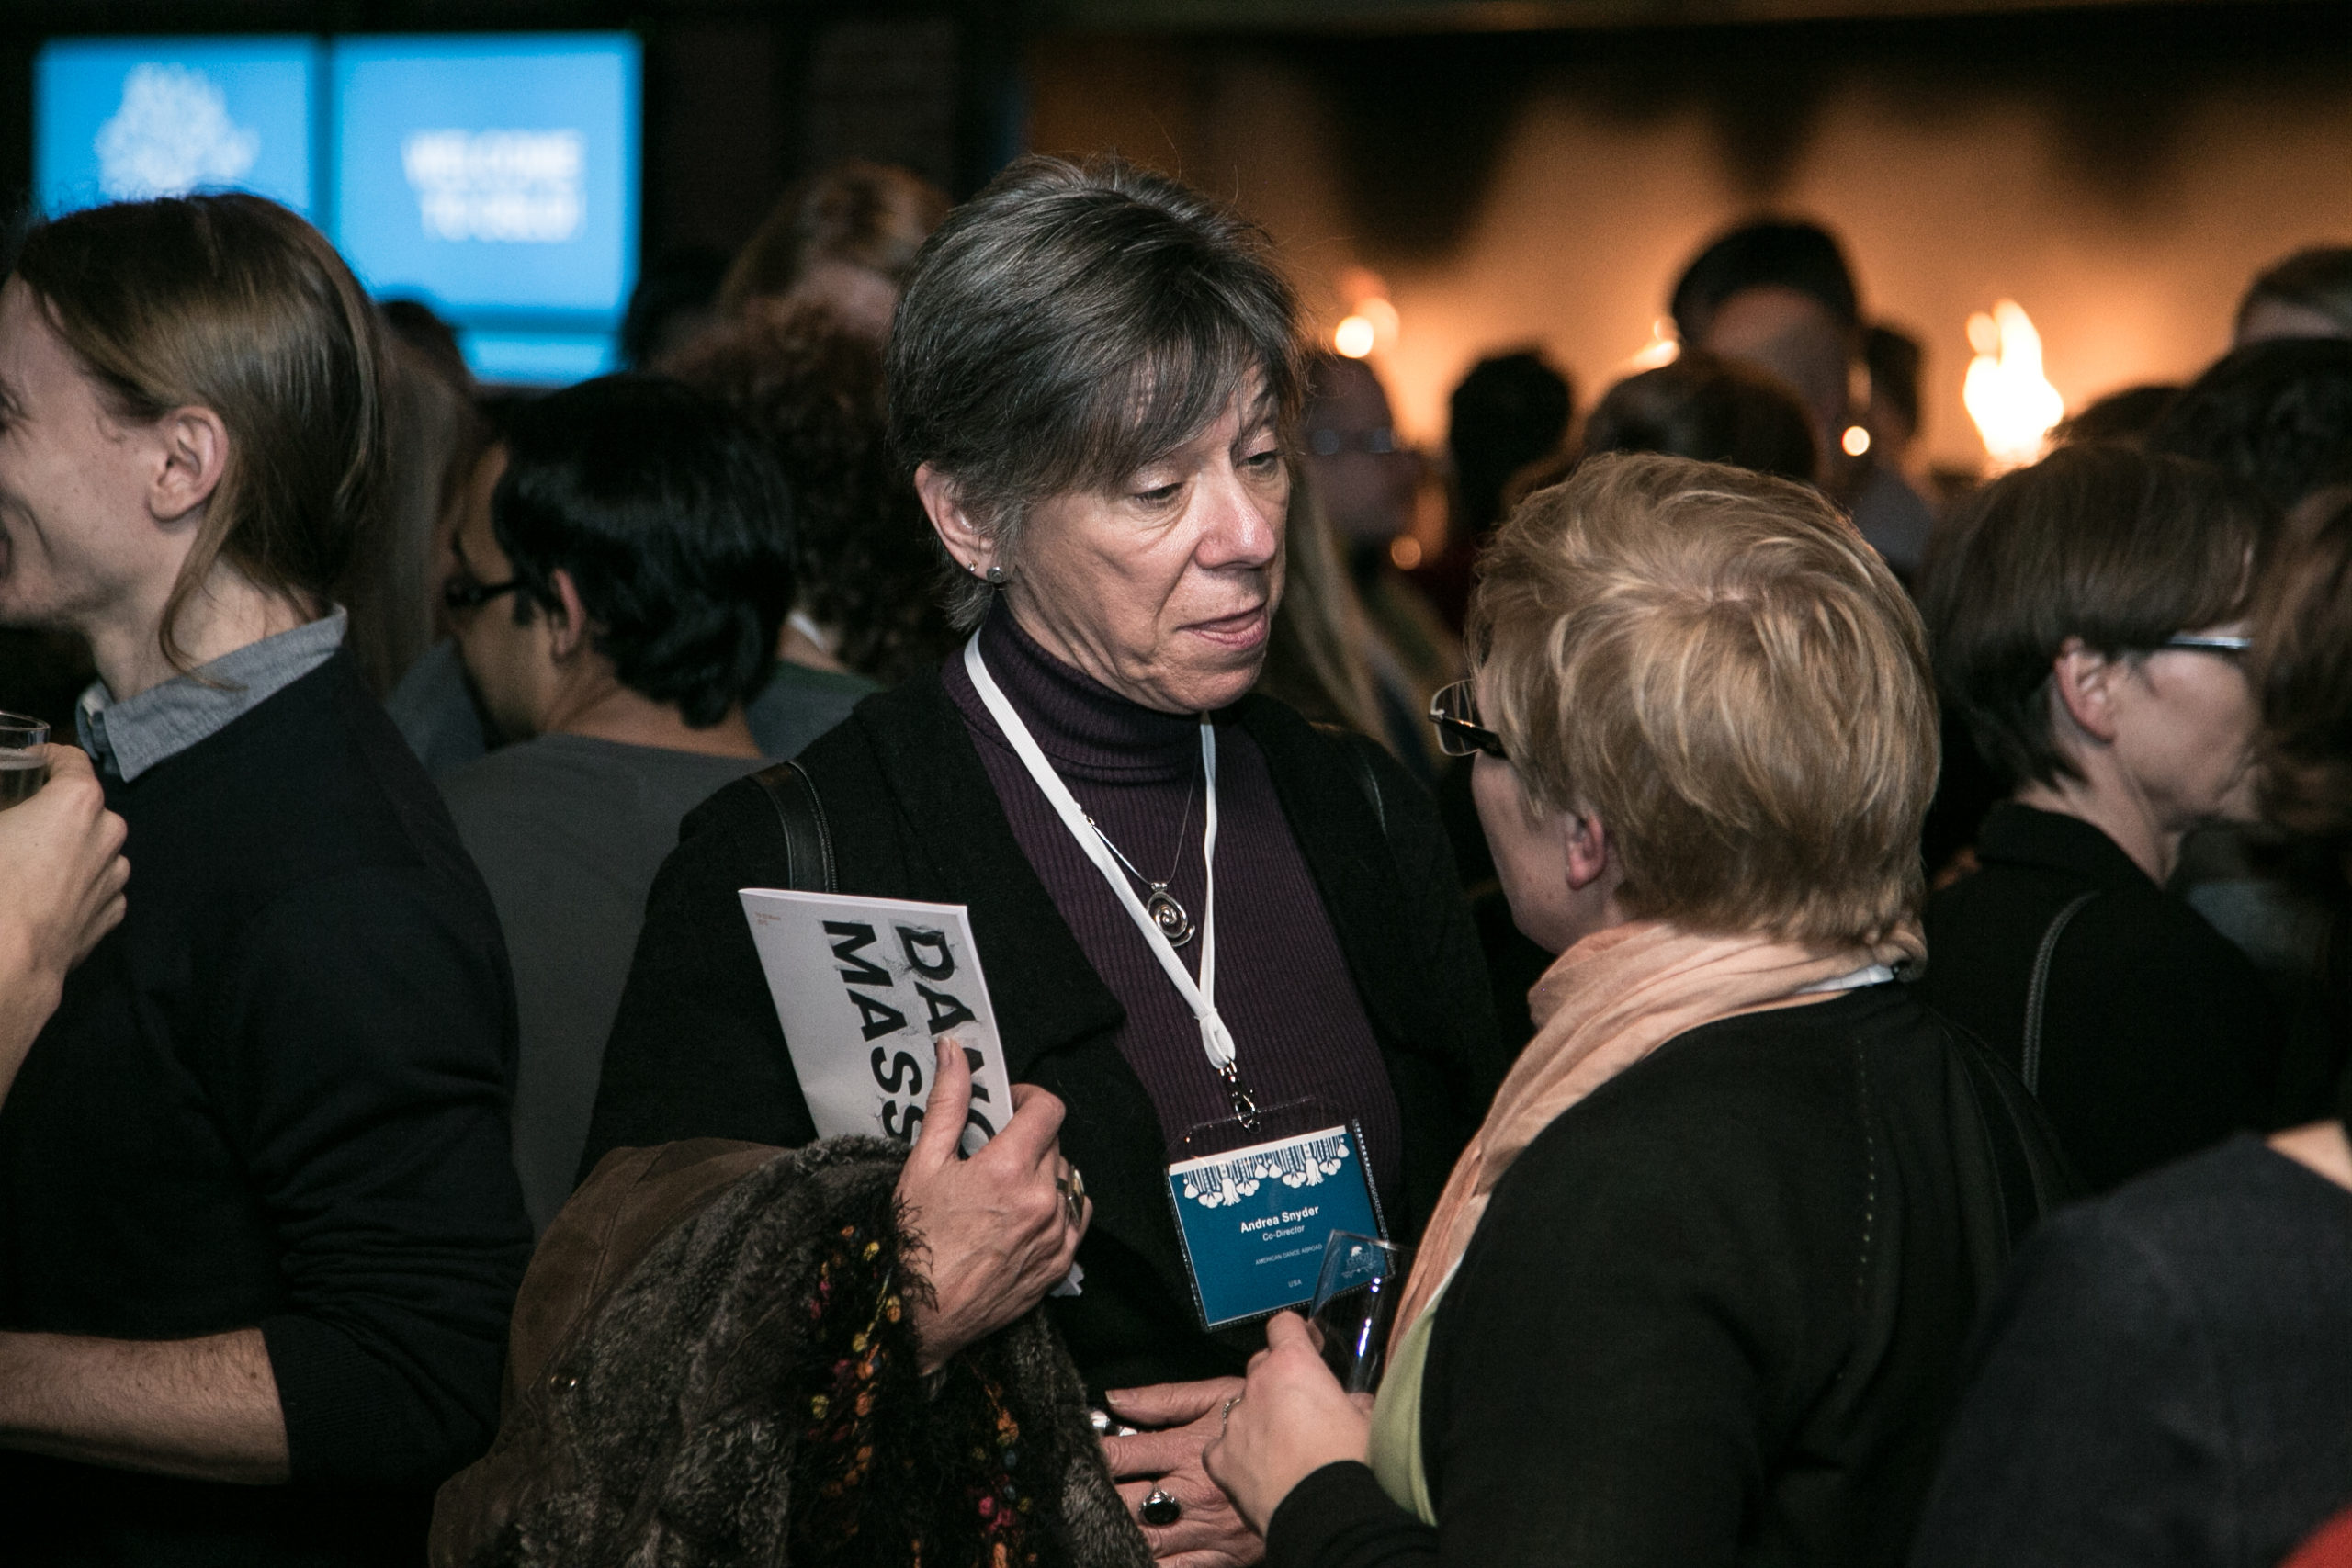 People attending Ice Hot Oslo 2014